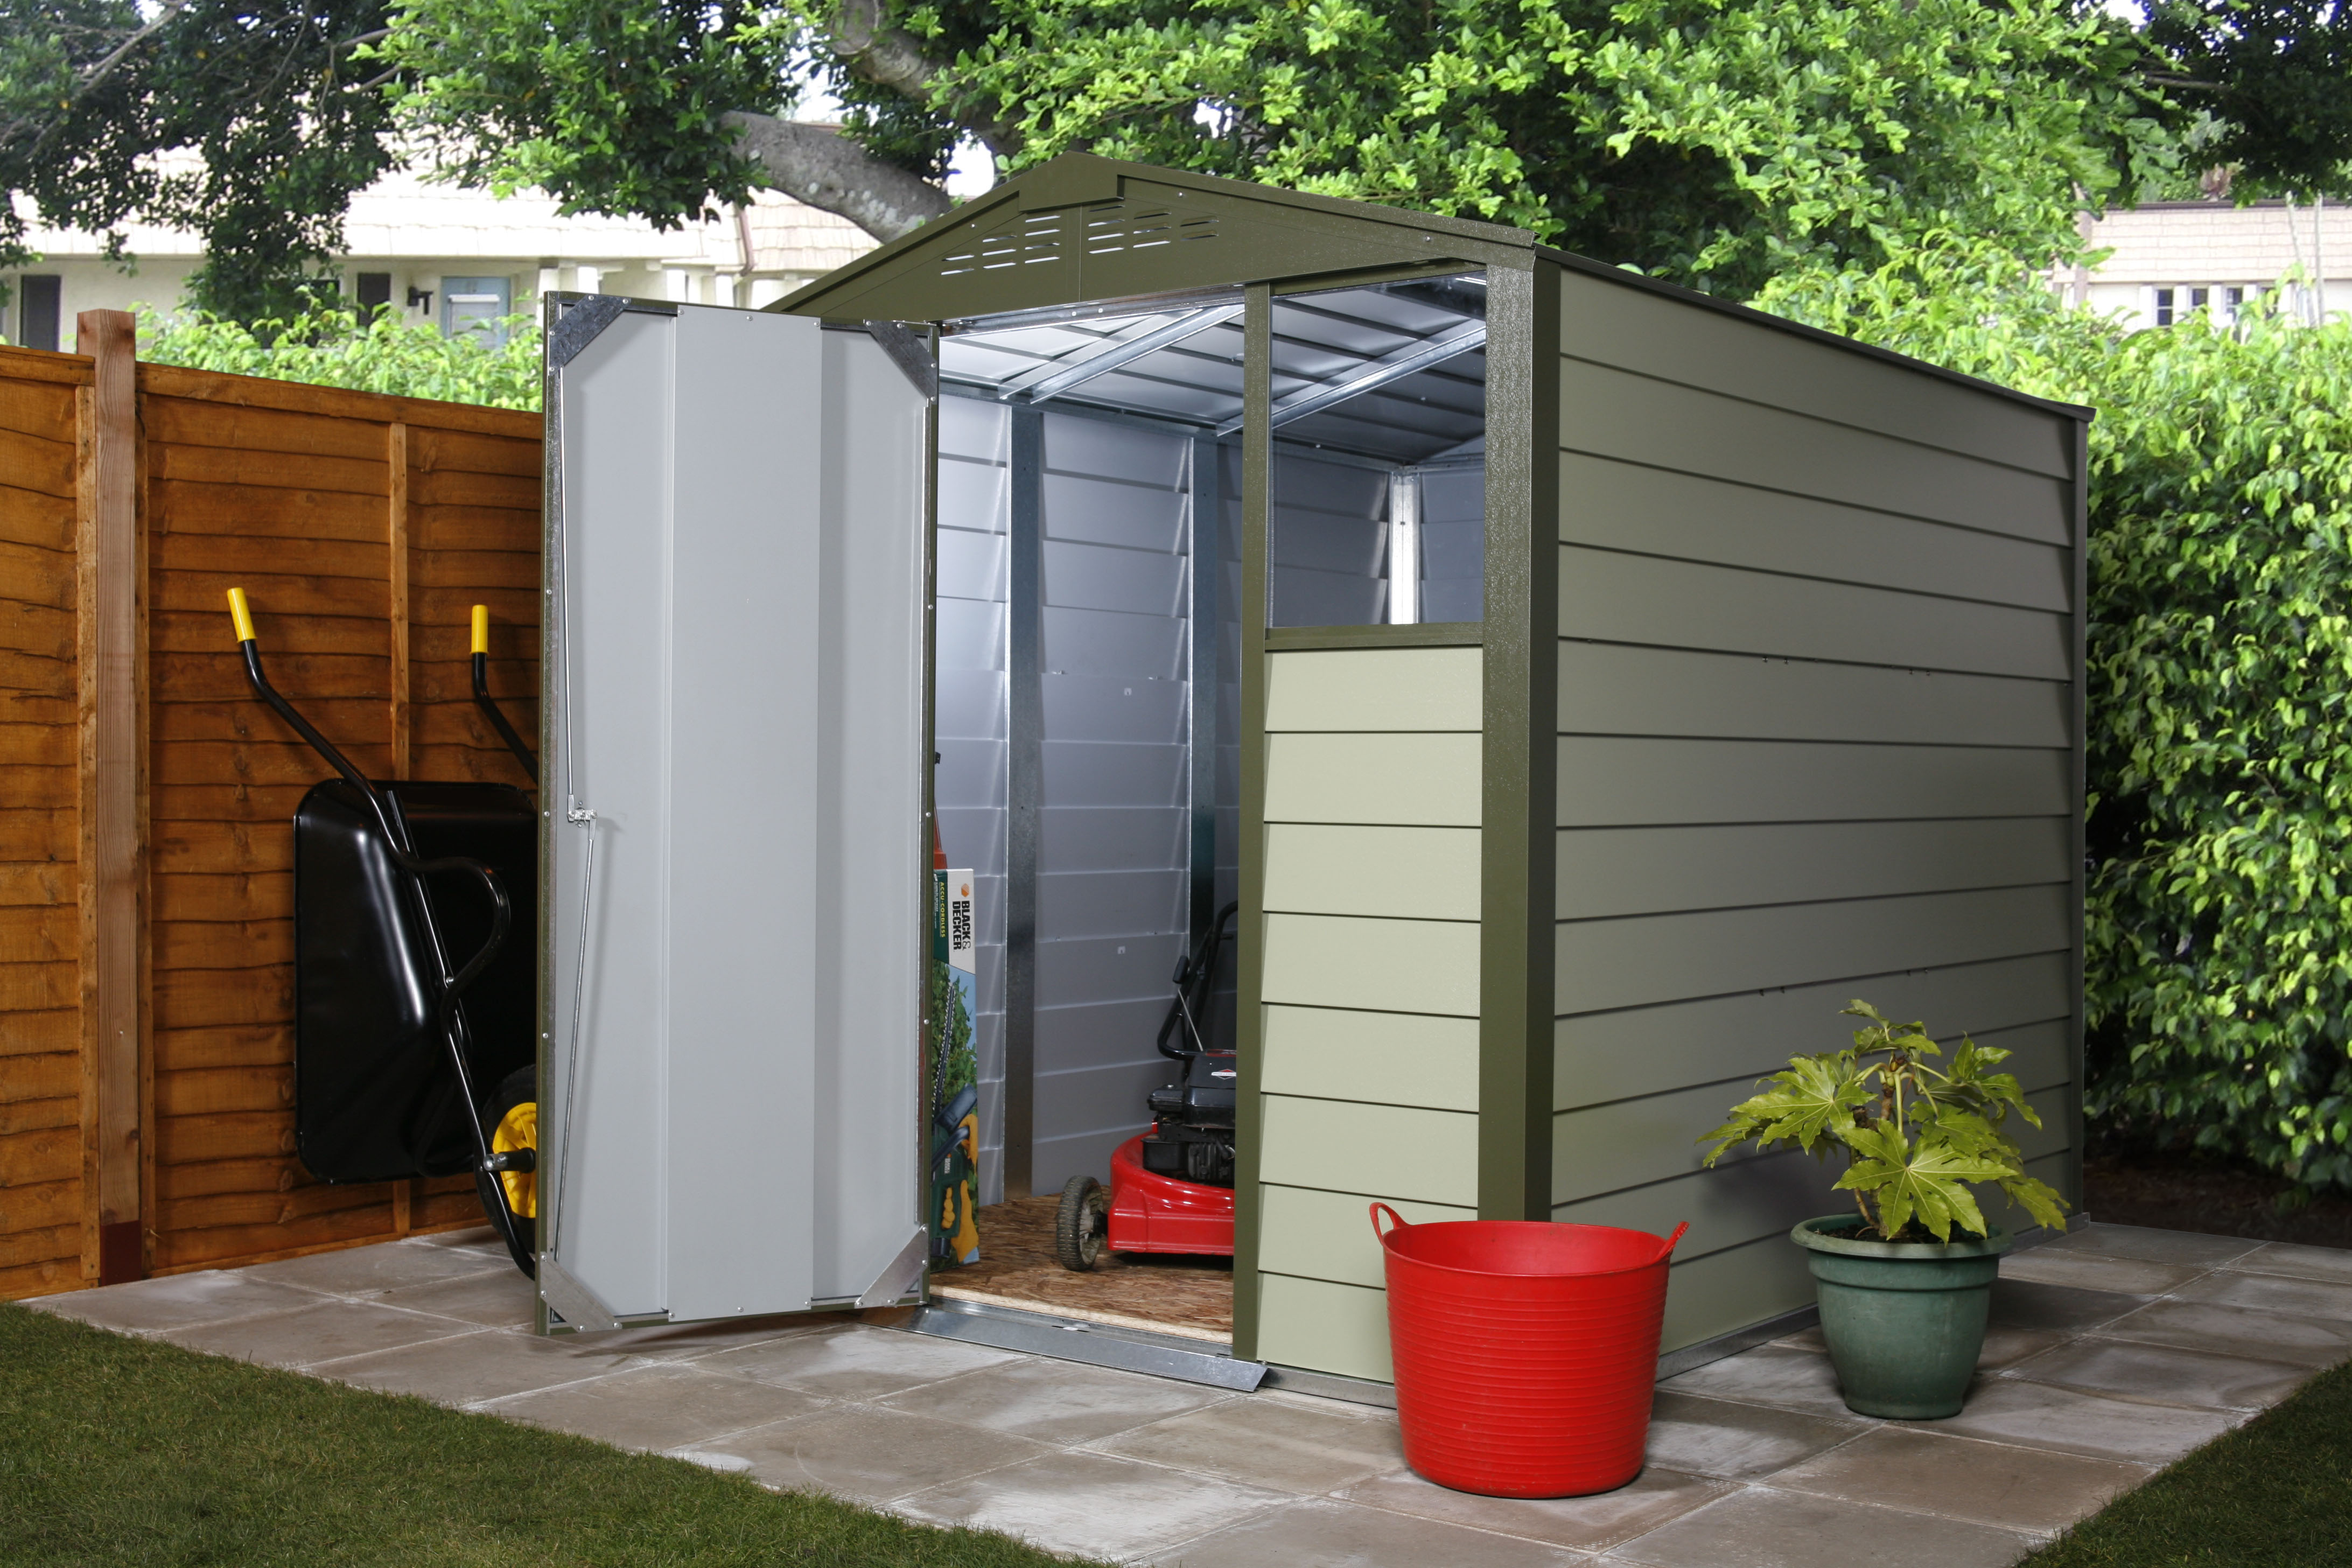 garages work offers tuff parker shacks sheds area photos shed cabins huts up golf studios and for businessden in store concession